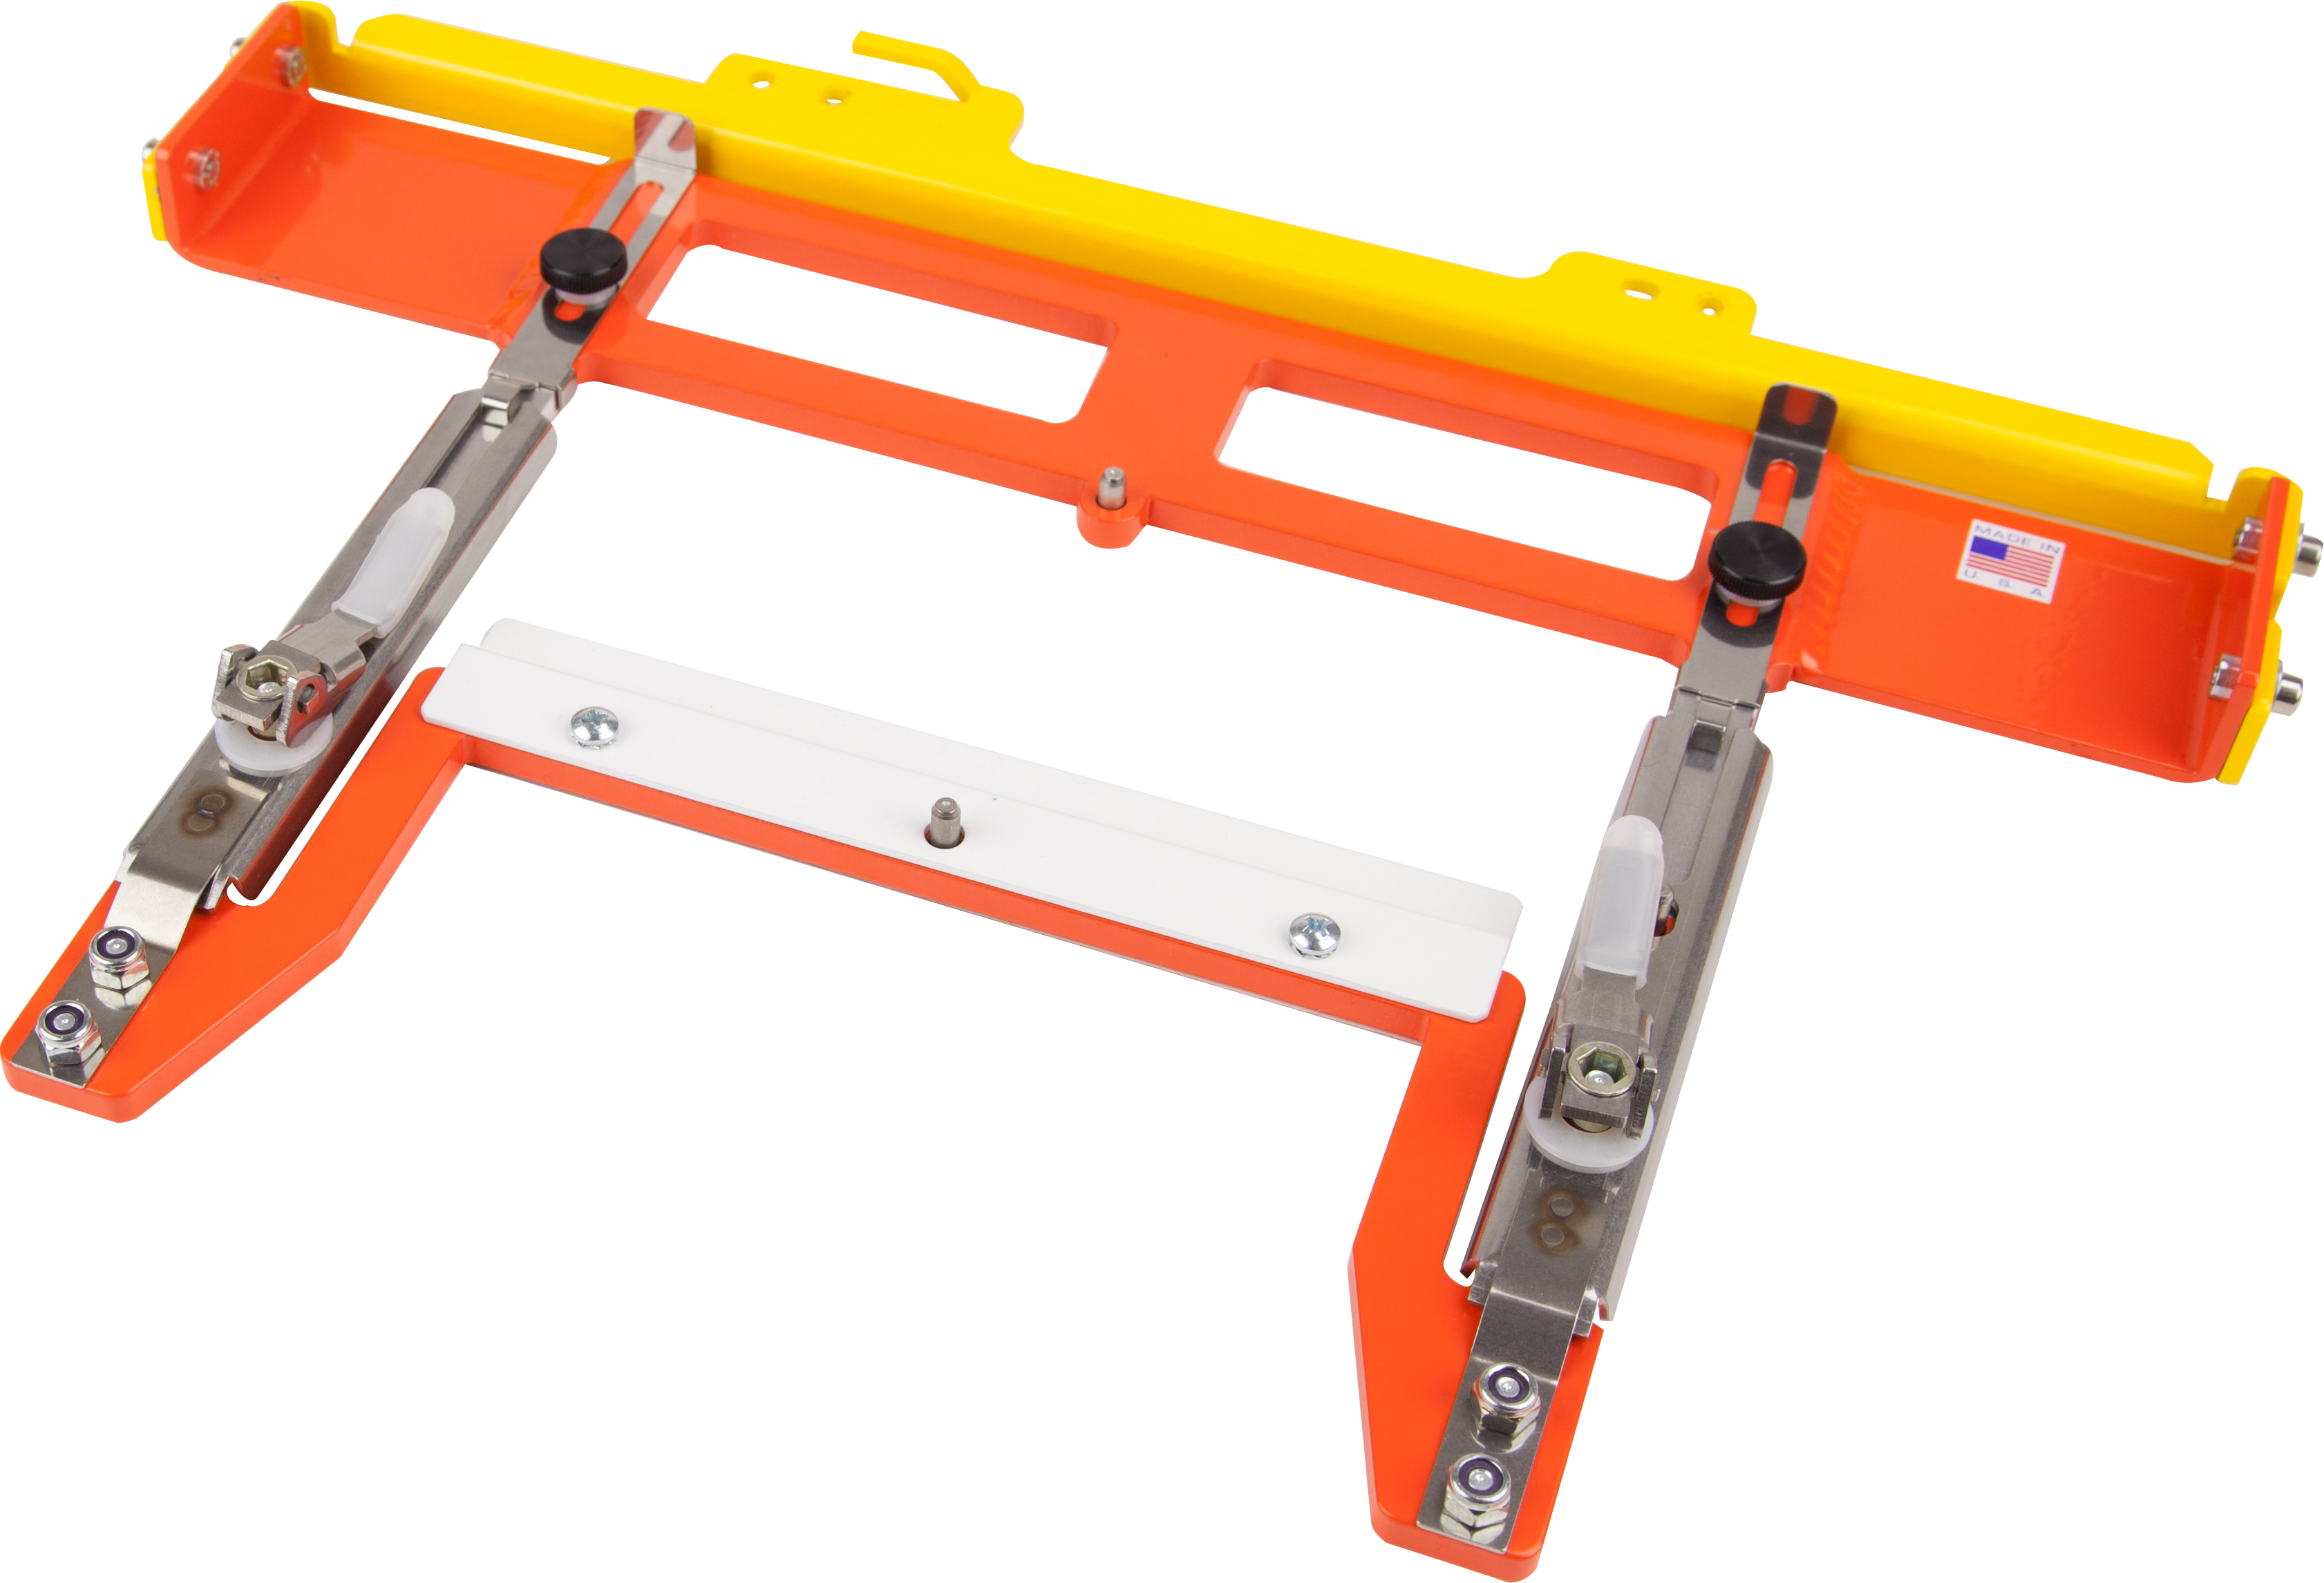 8 Inch Strap Clamp